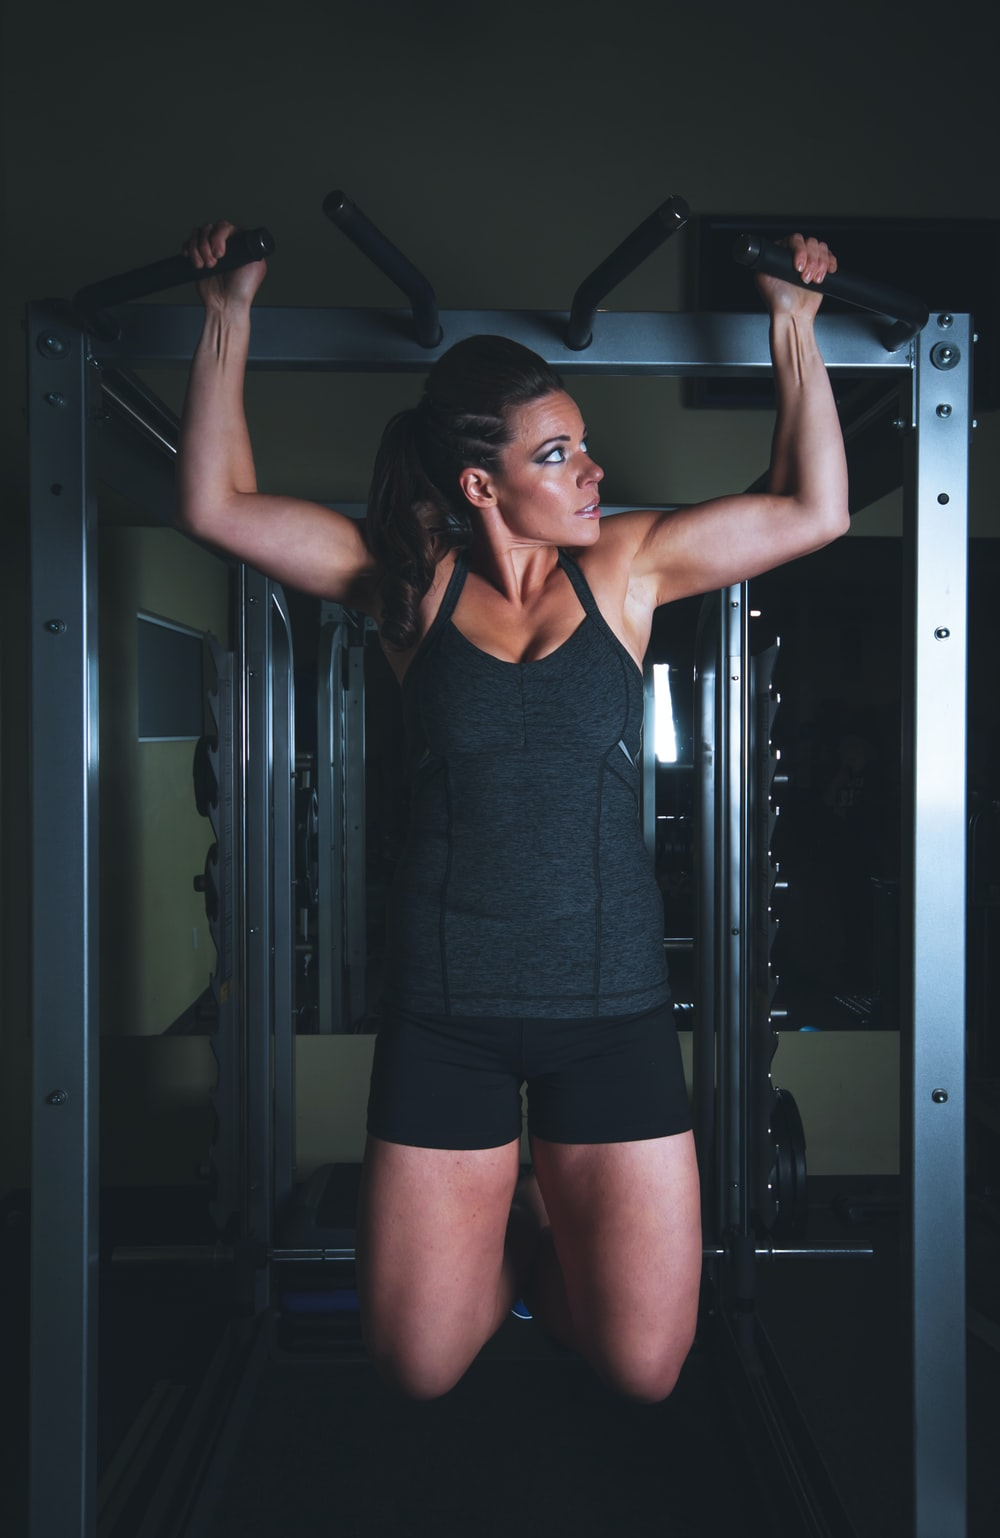 A woman doing a pull up at the gym for bodybuilding training